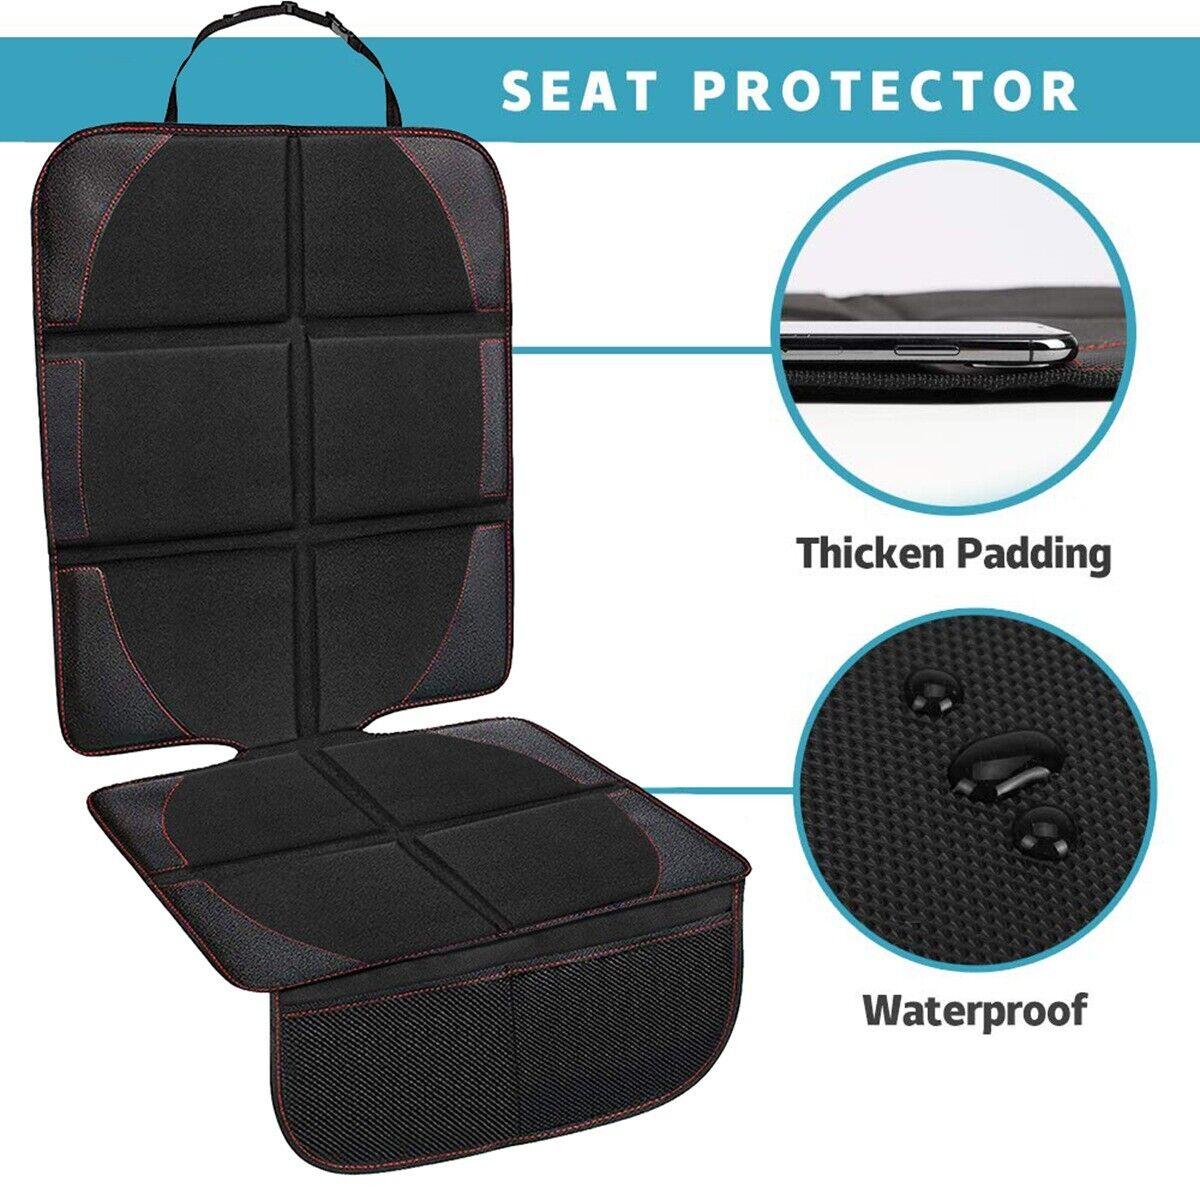 Universal Non-Slip Mesh Pockets Car Seat Protector from Chil